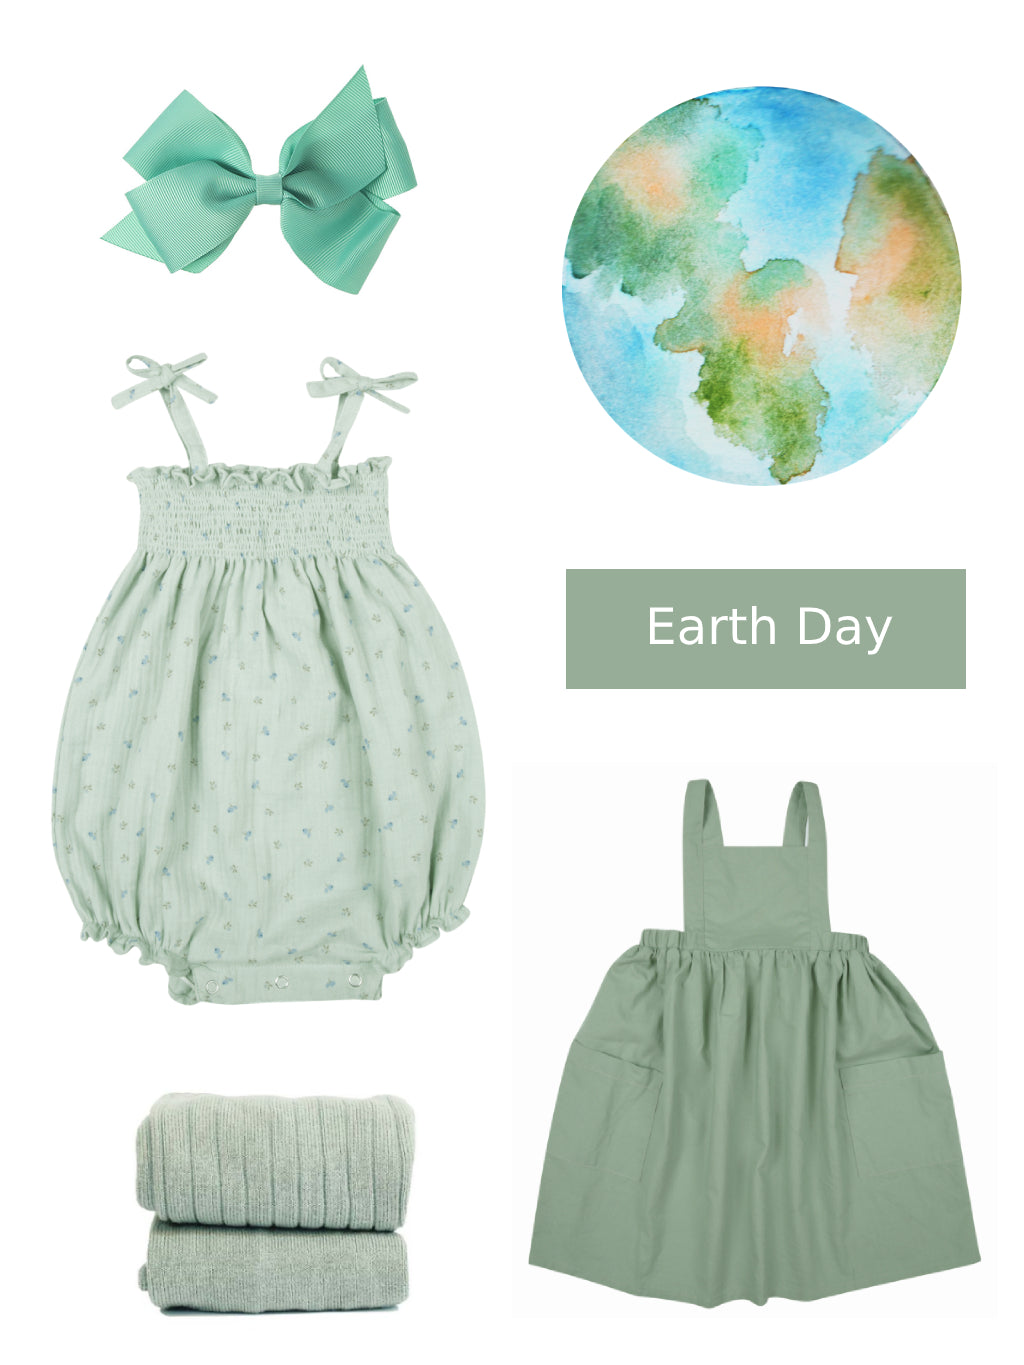 green outfits to celebrate earth day